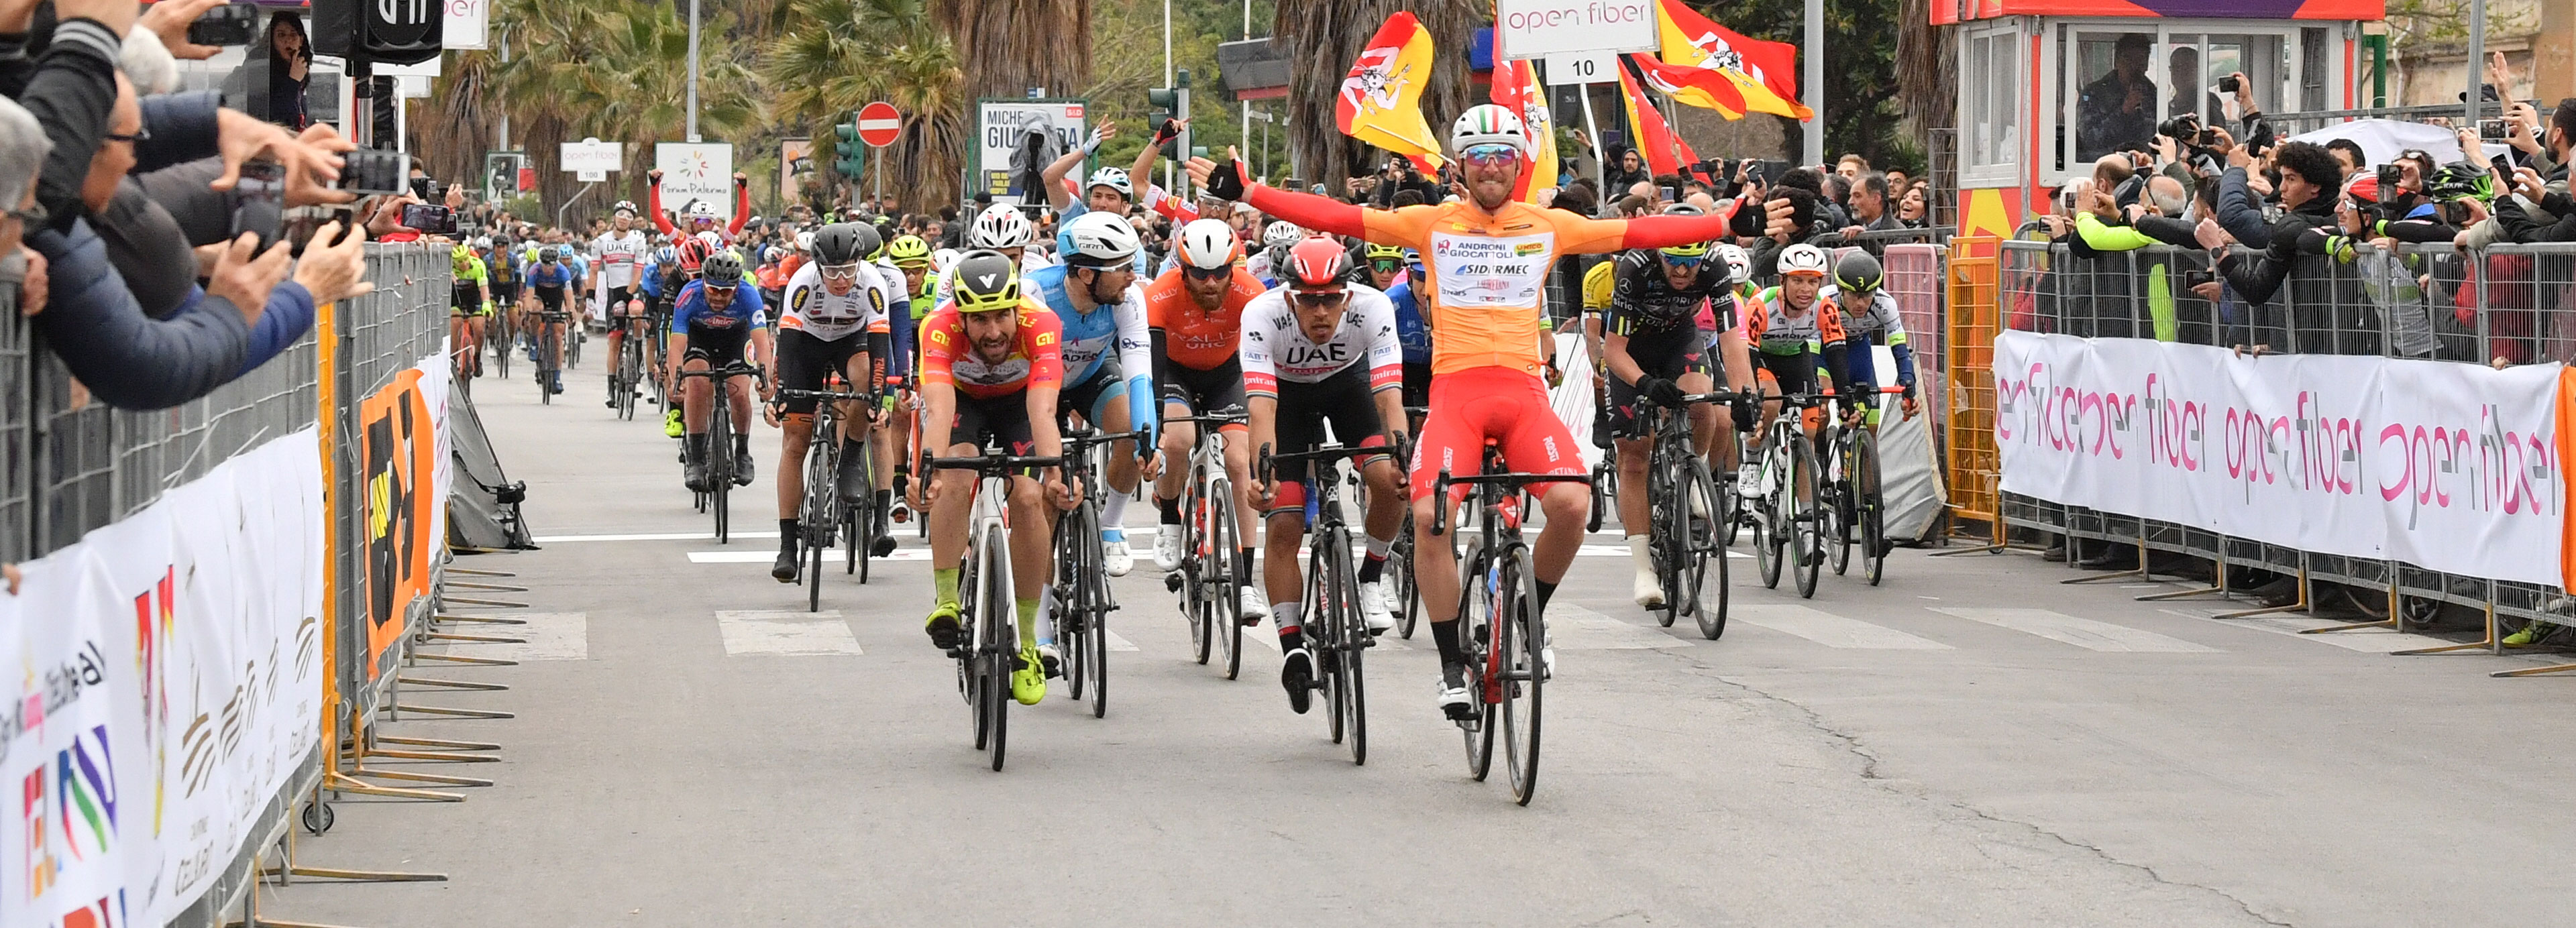 Belletti wins Stage 2 of Il Giro di Sicilia and wears the Maglia Rossa e Gialla